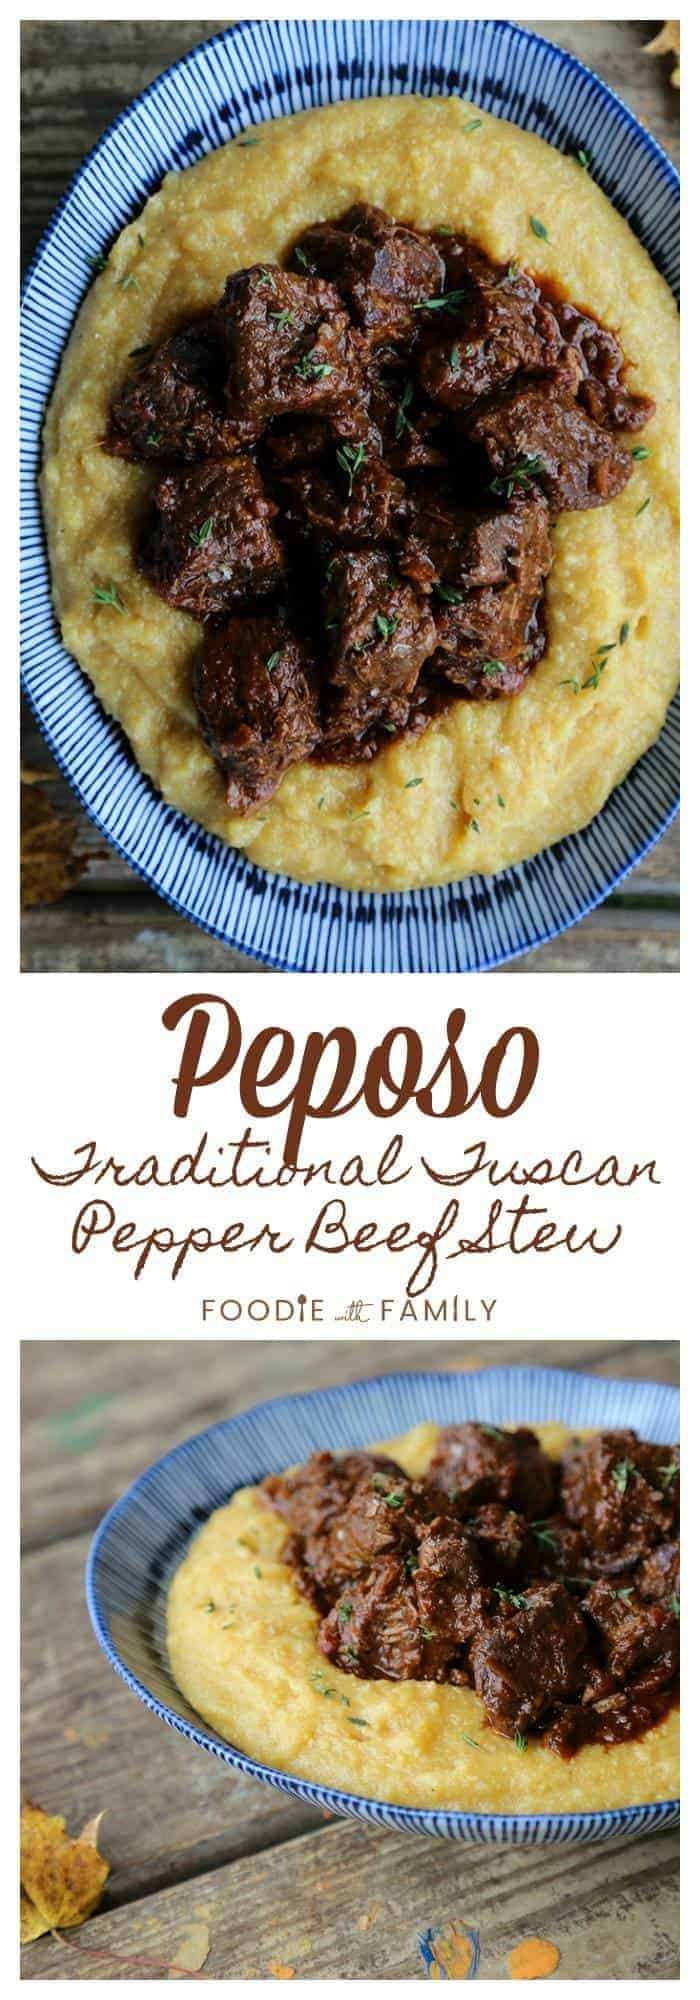 Fall-apart tender cubes of beef braised in a gently garlicky, bold red wine and black pepper sauce make the traditional Tuscan Peposo - Peppered Beef Stew.